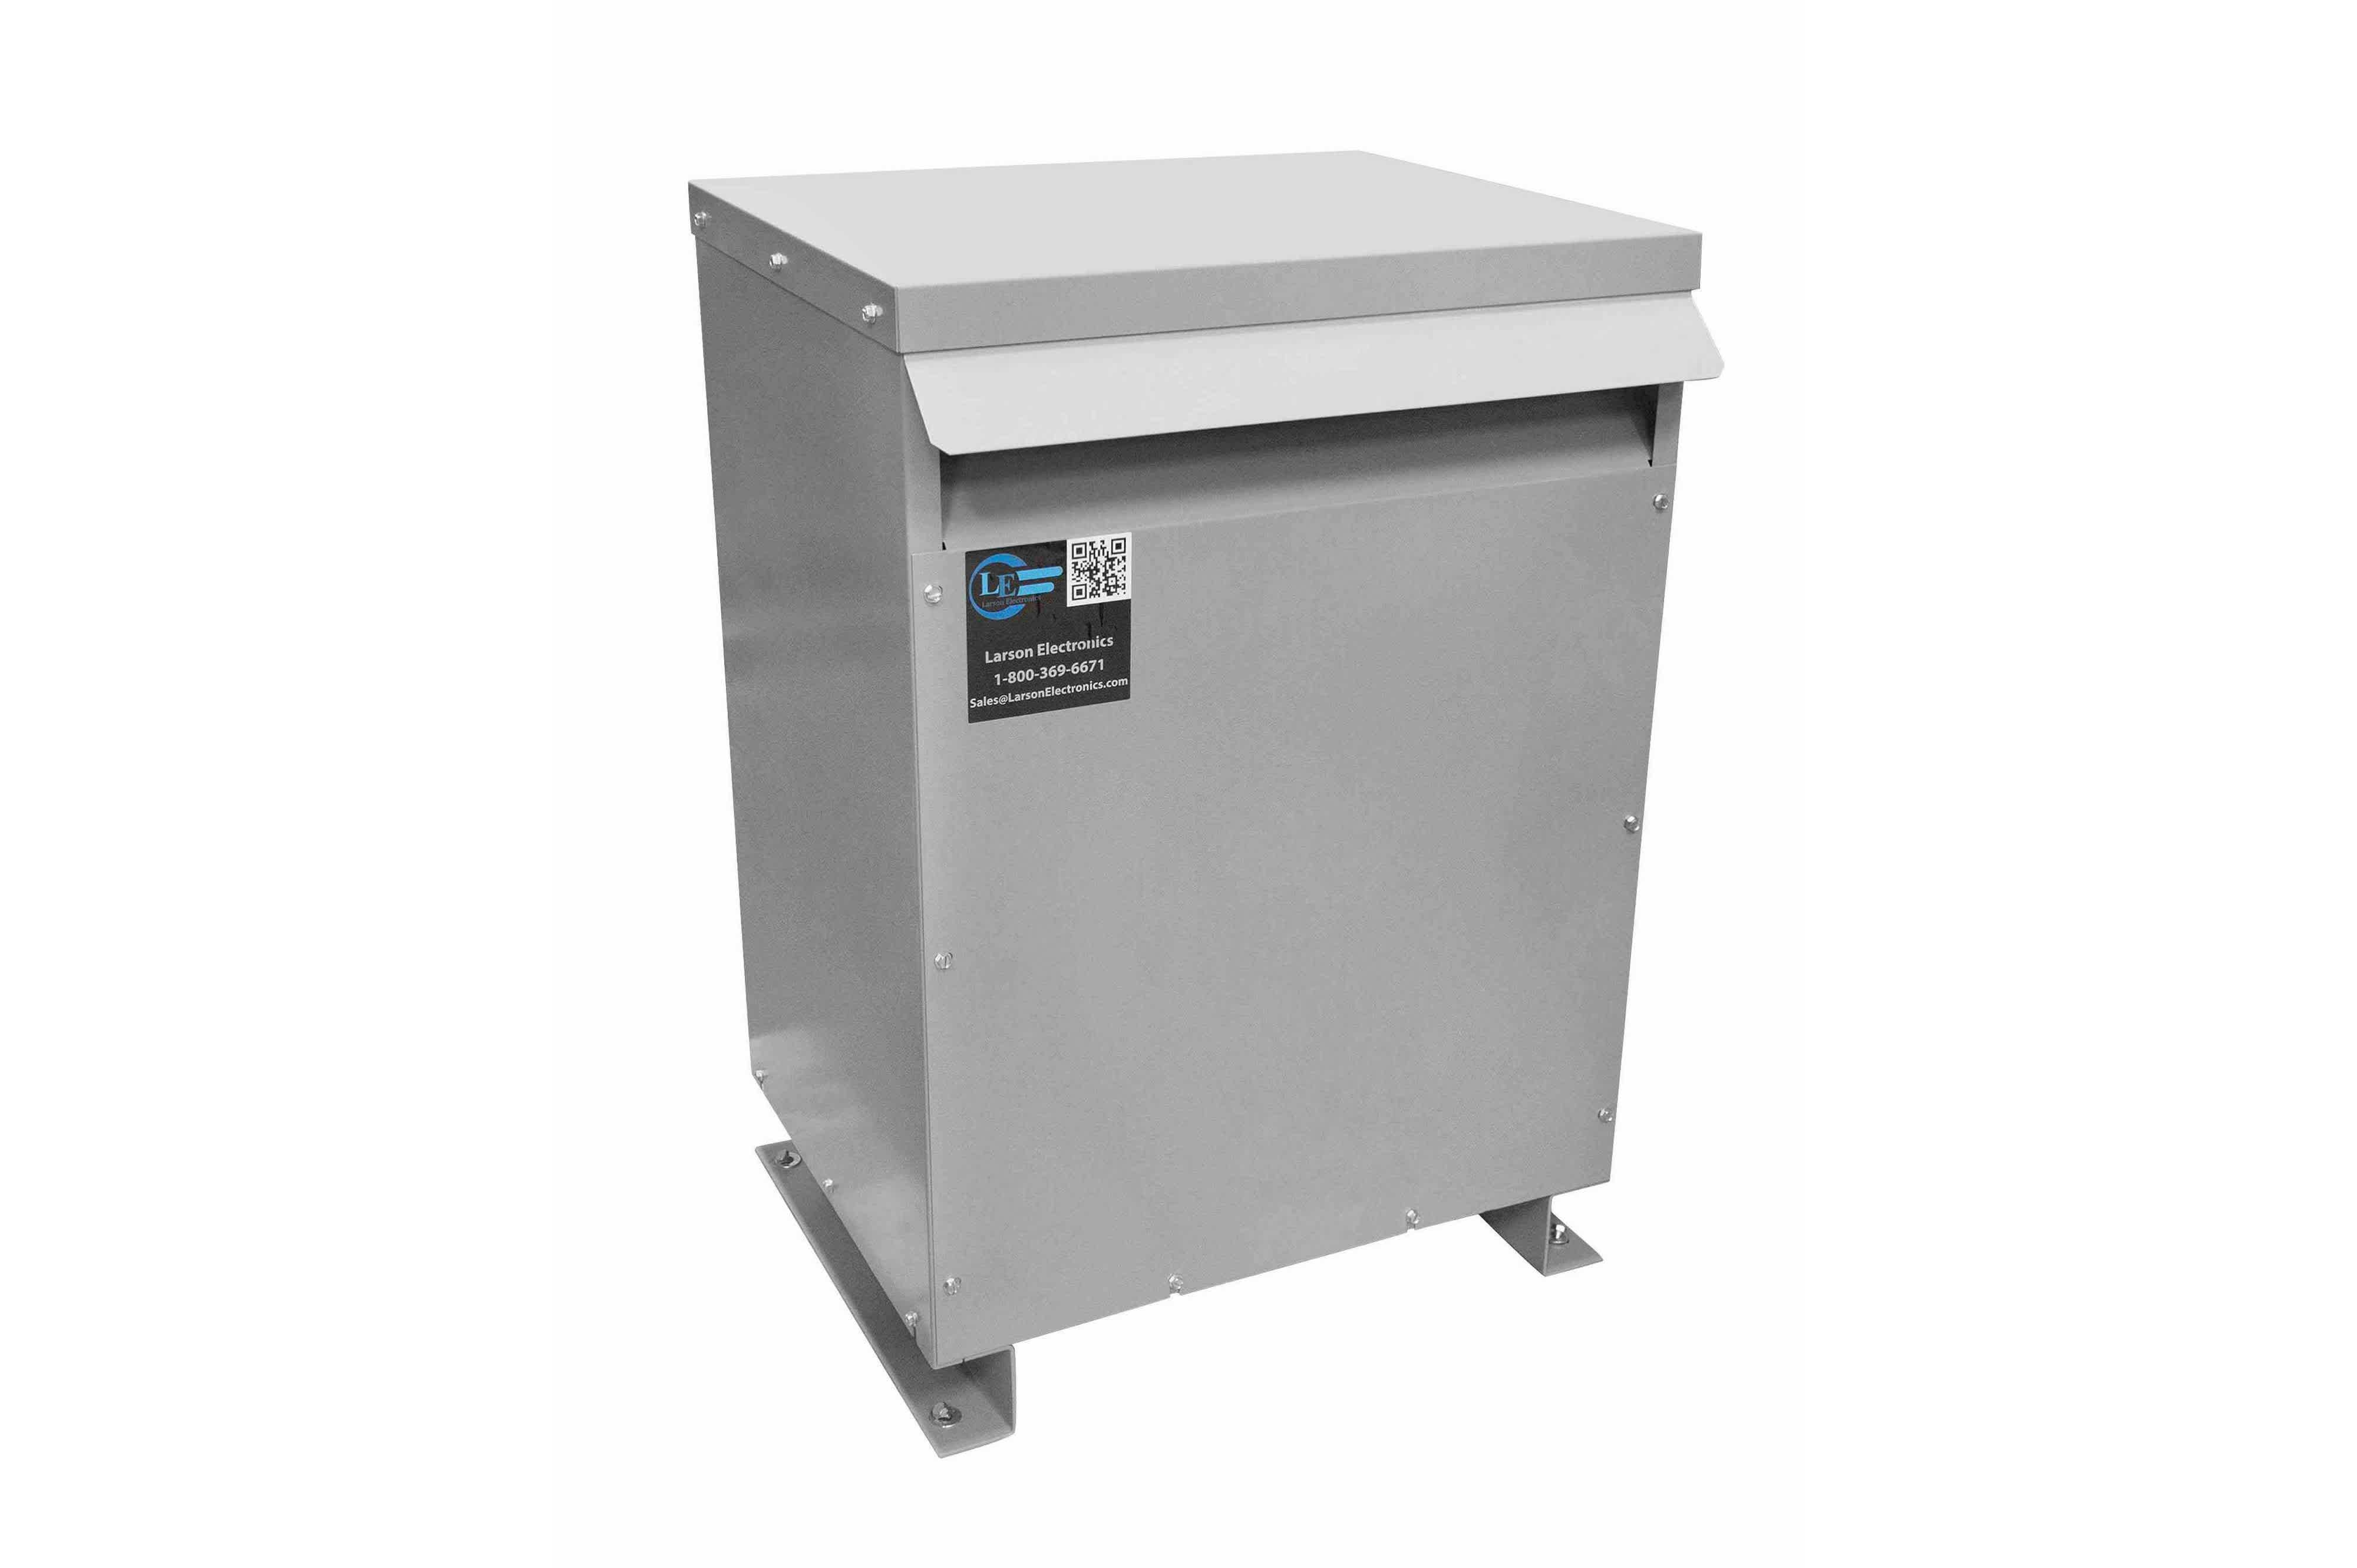 11 kVA 3PH Isolation Transformer, 380V Delta Primary, 600V Delta Secondary, N3R, Ventilated, 60 Hz